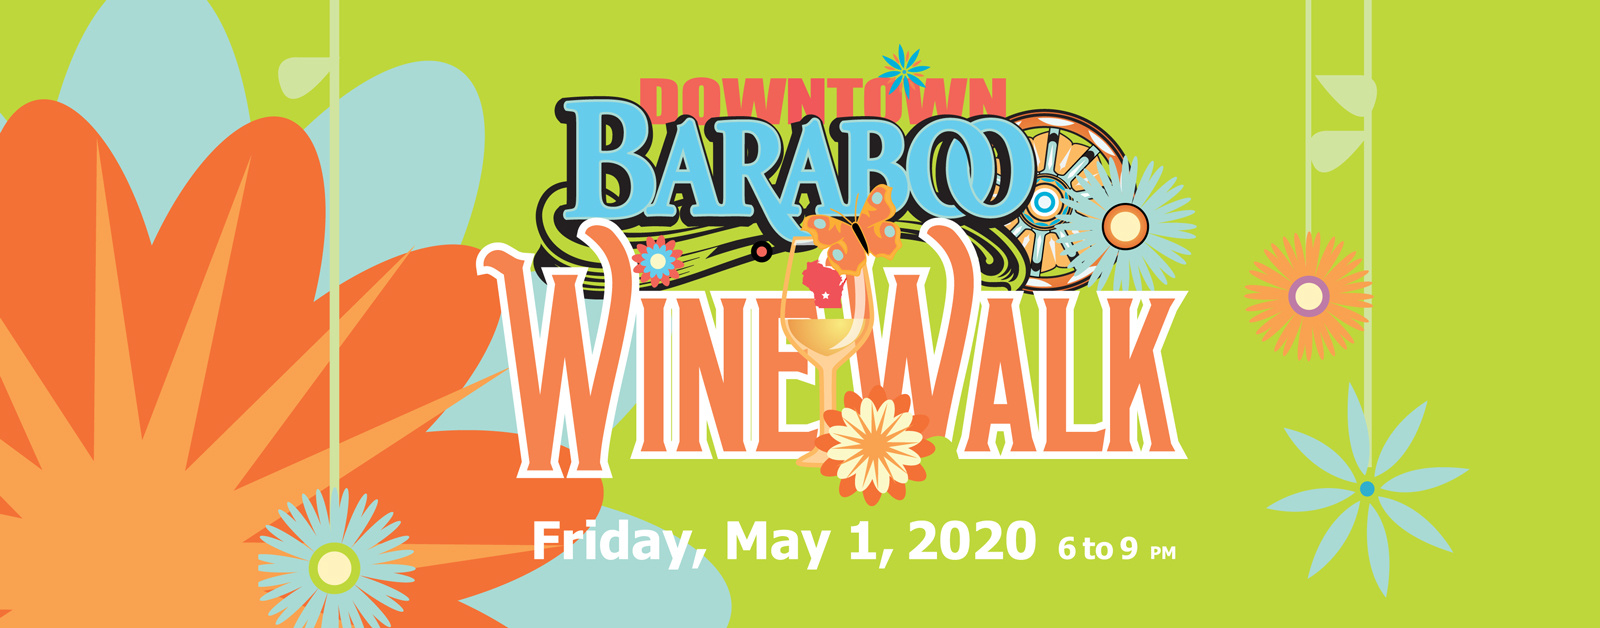 May Day Spring 2020 Wine Walk